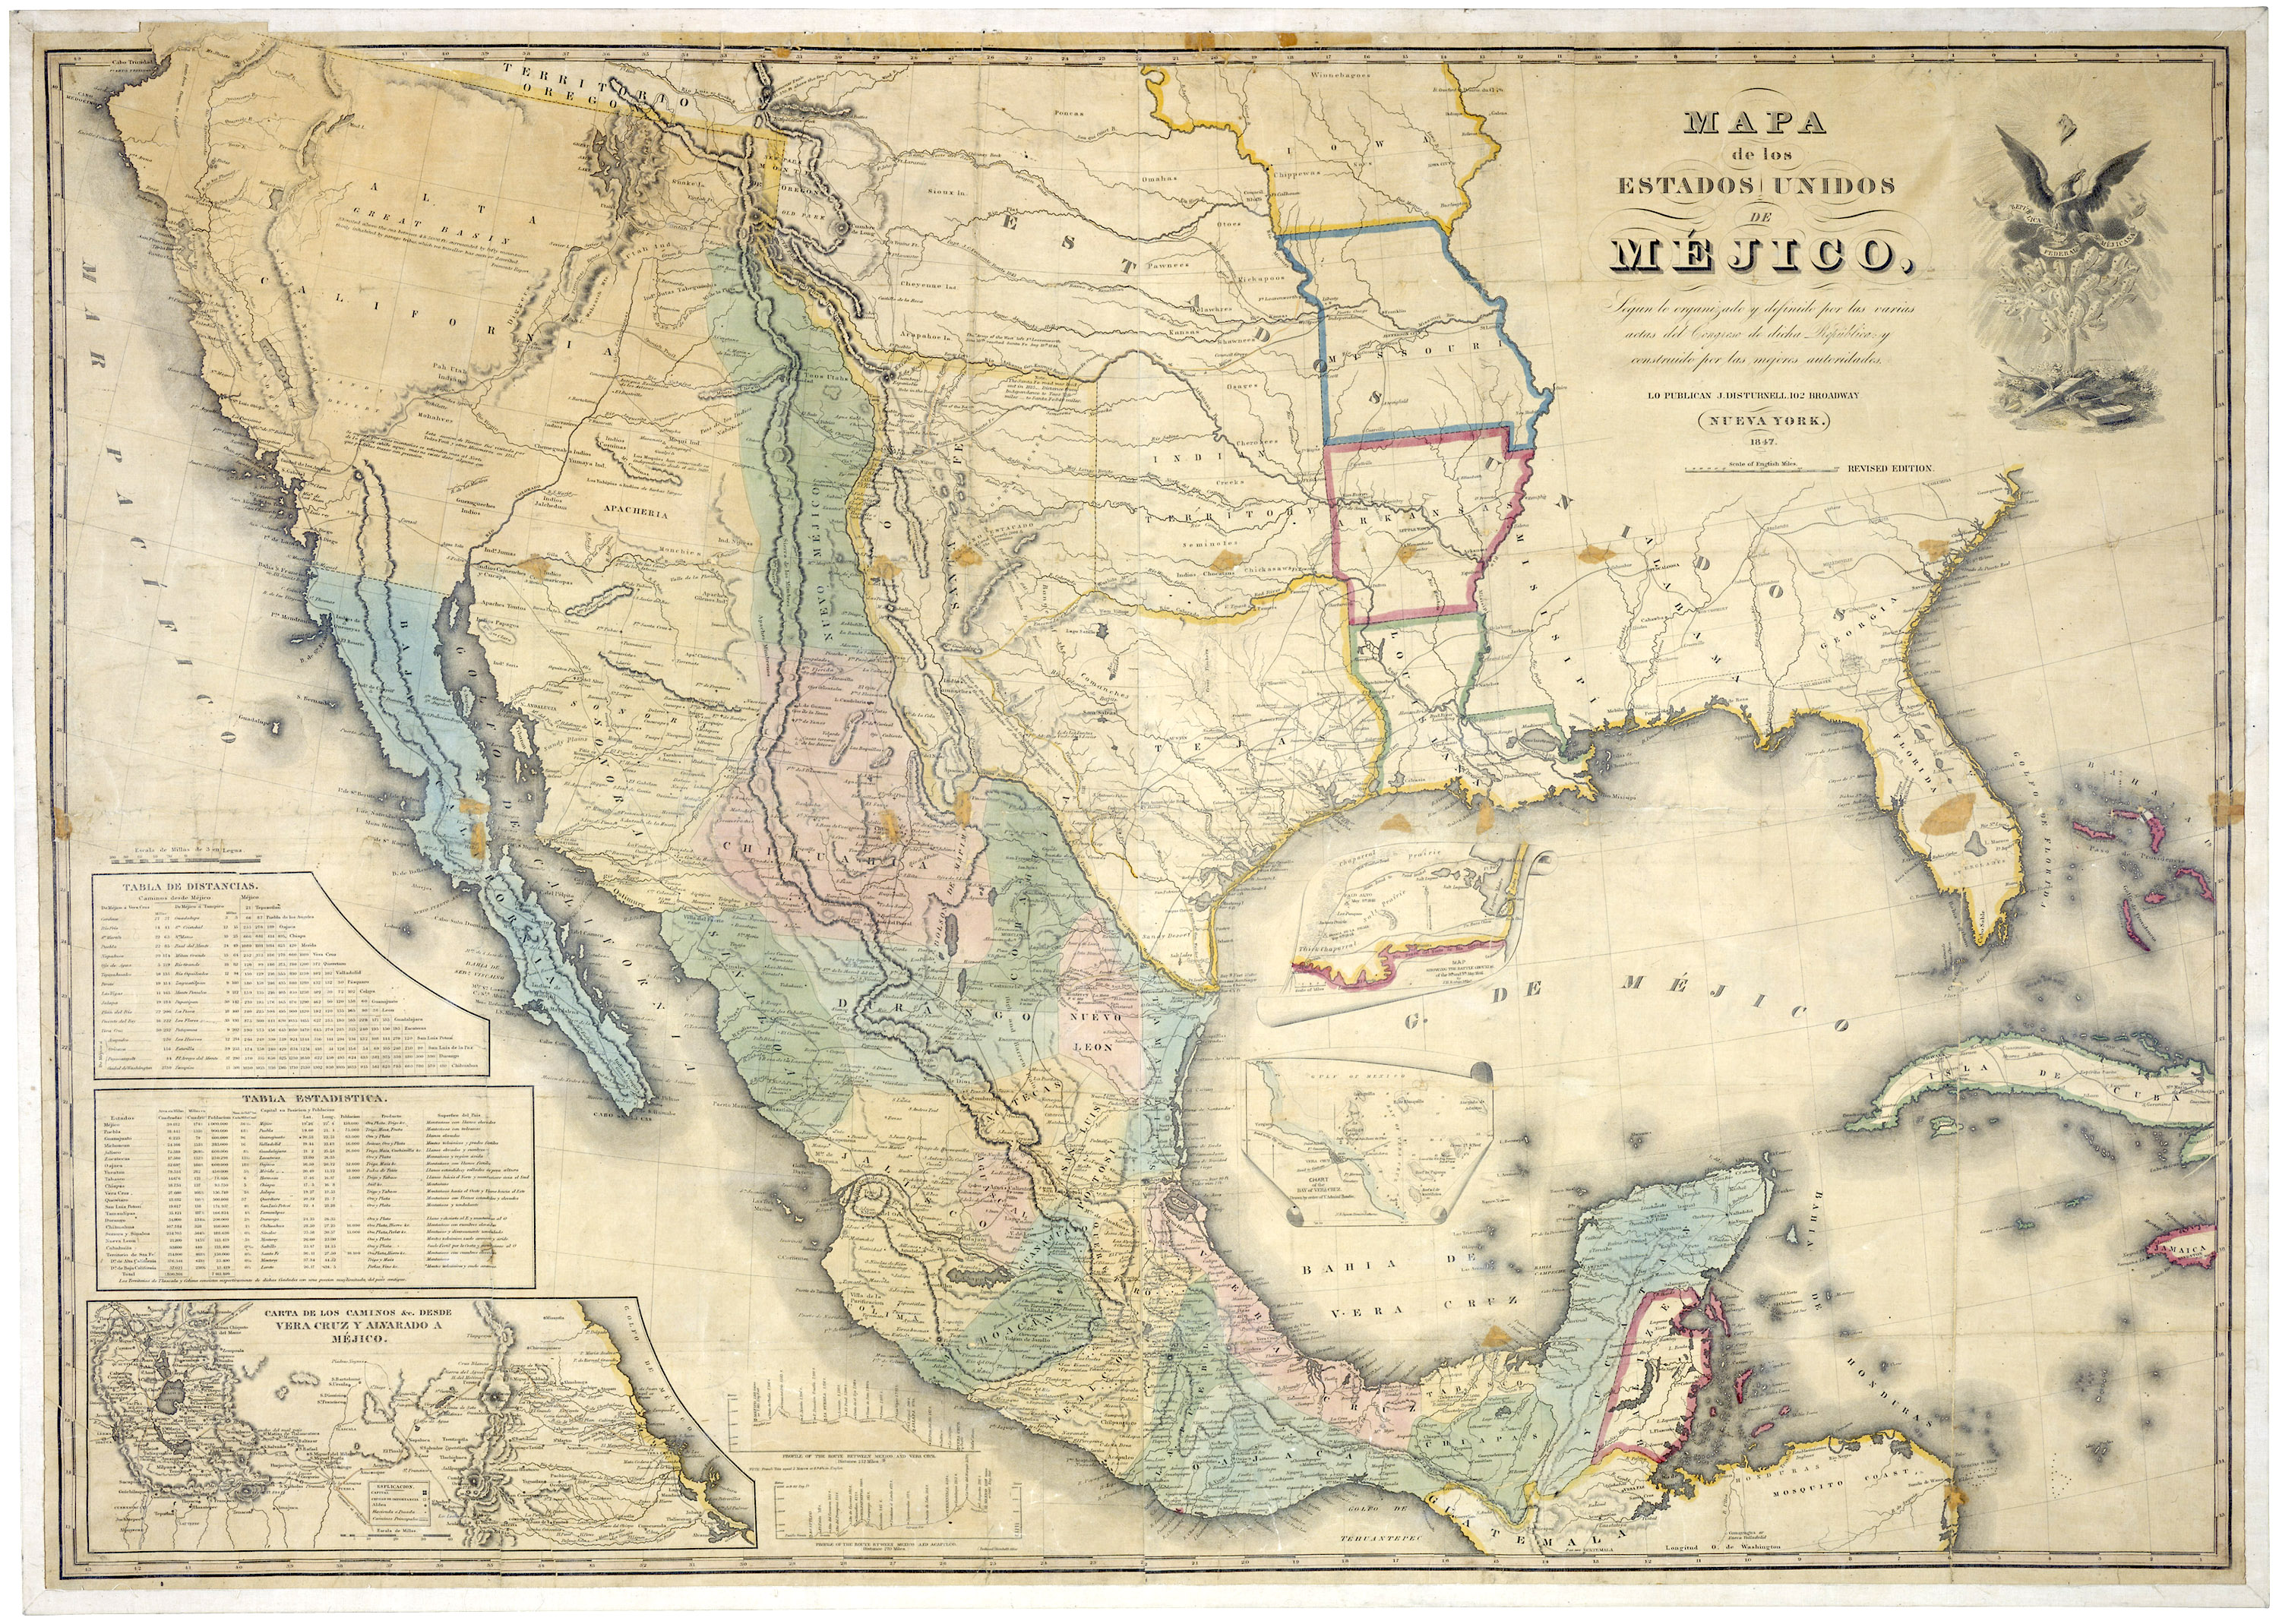 Map of the United States and Mexico, published in 1847